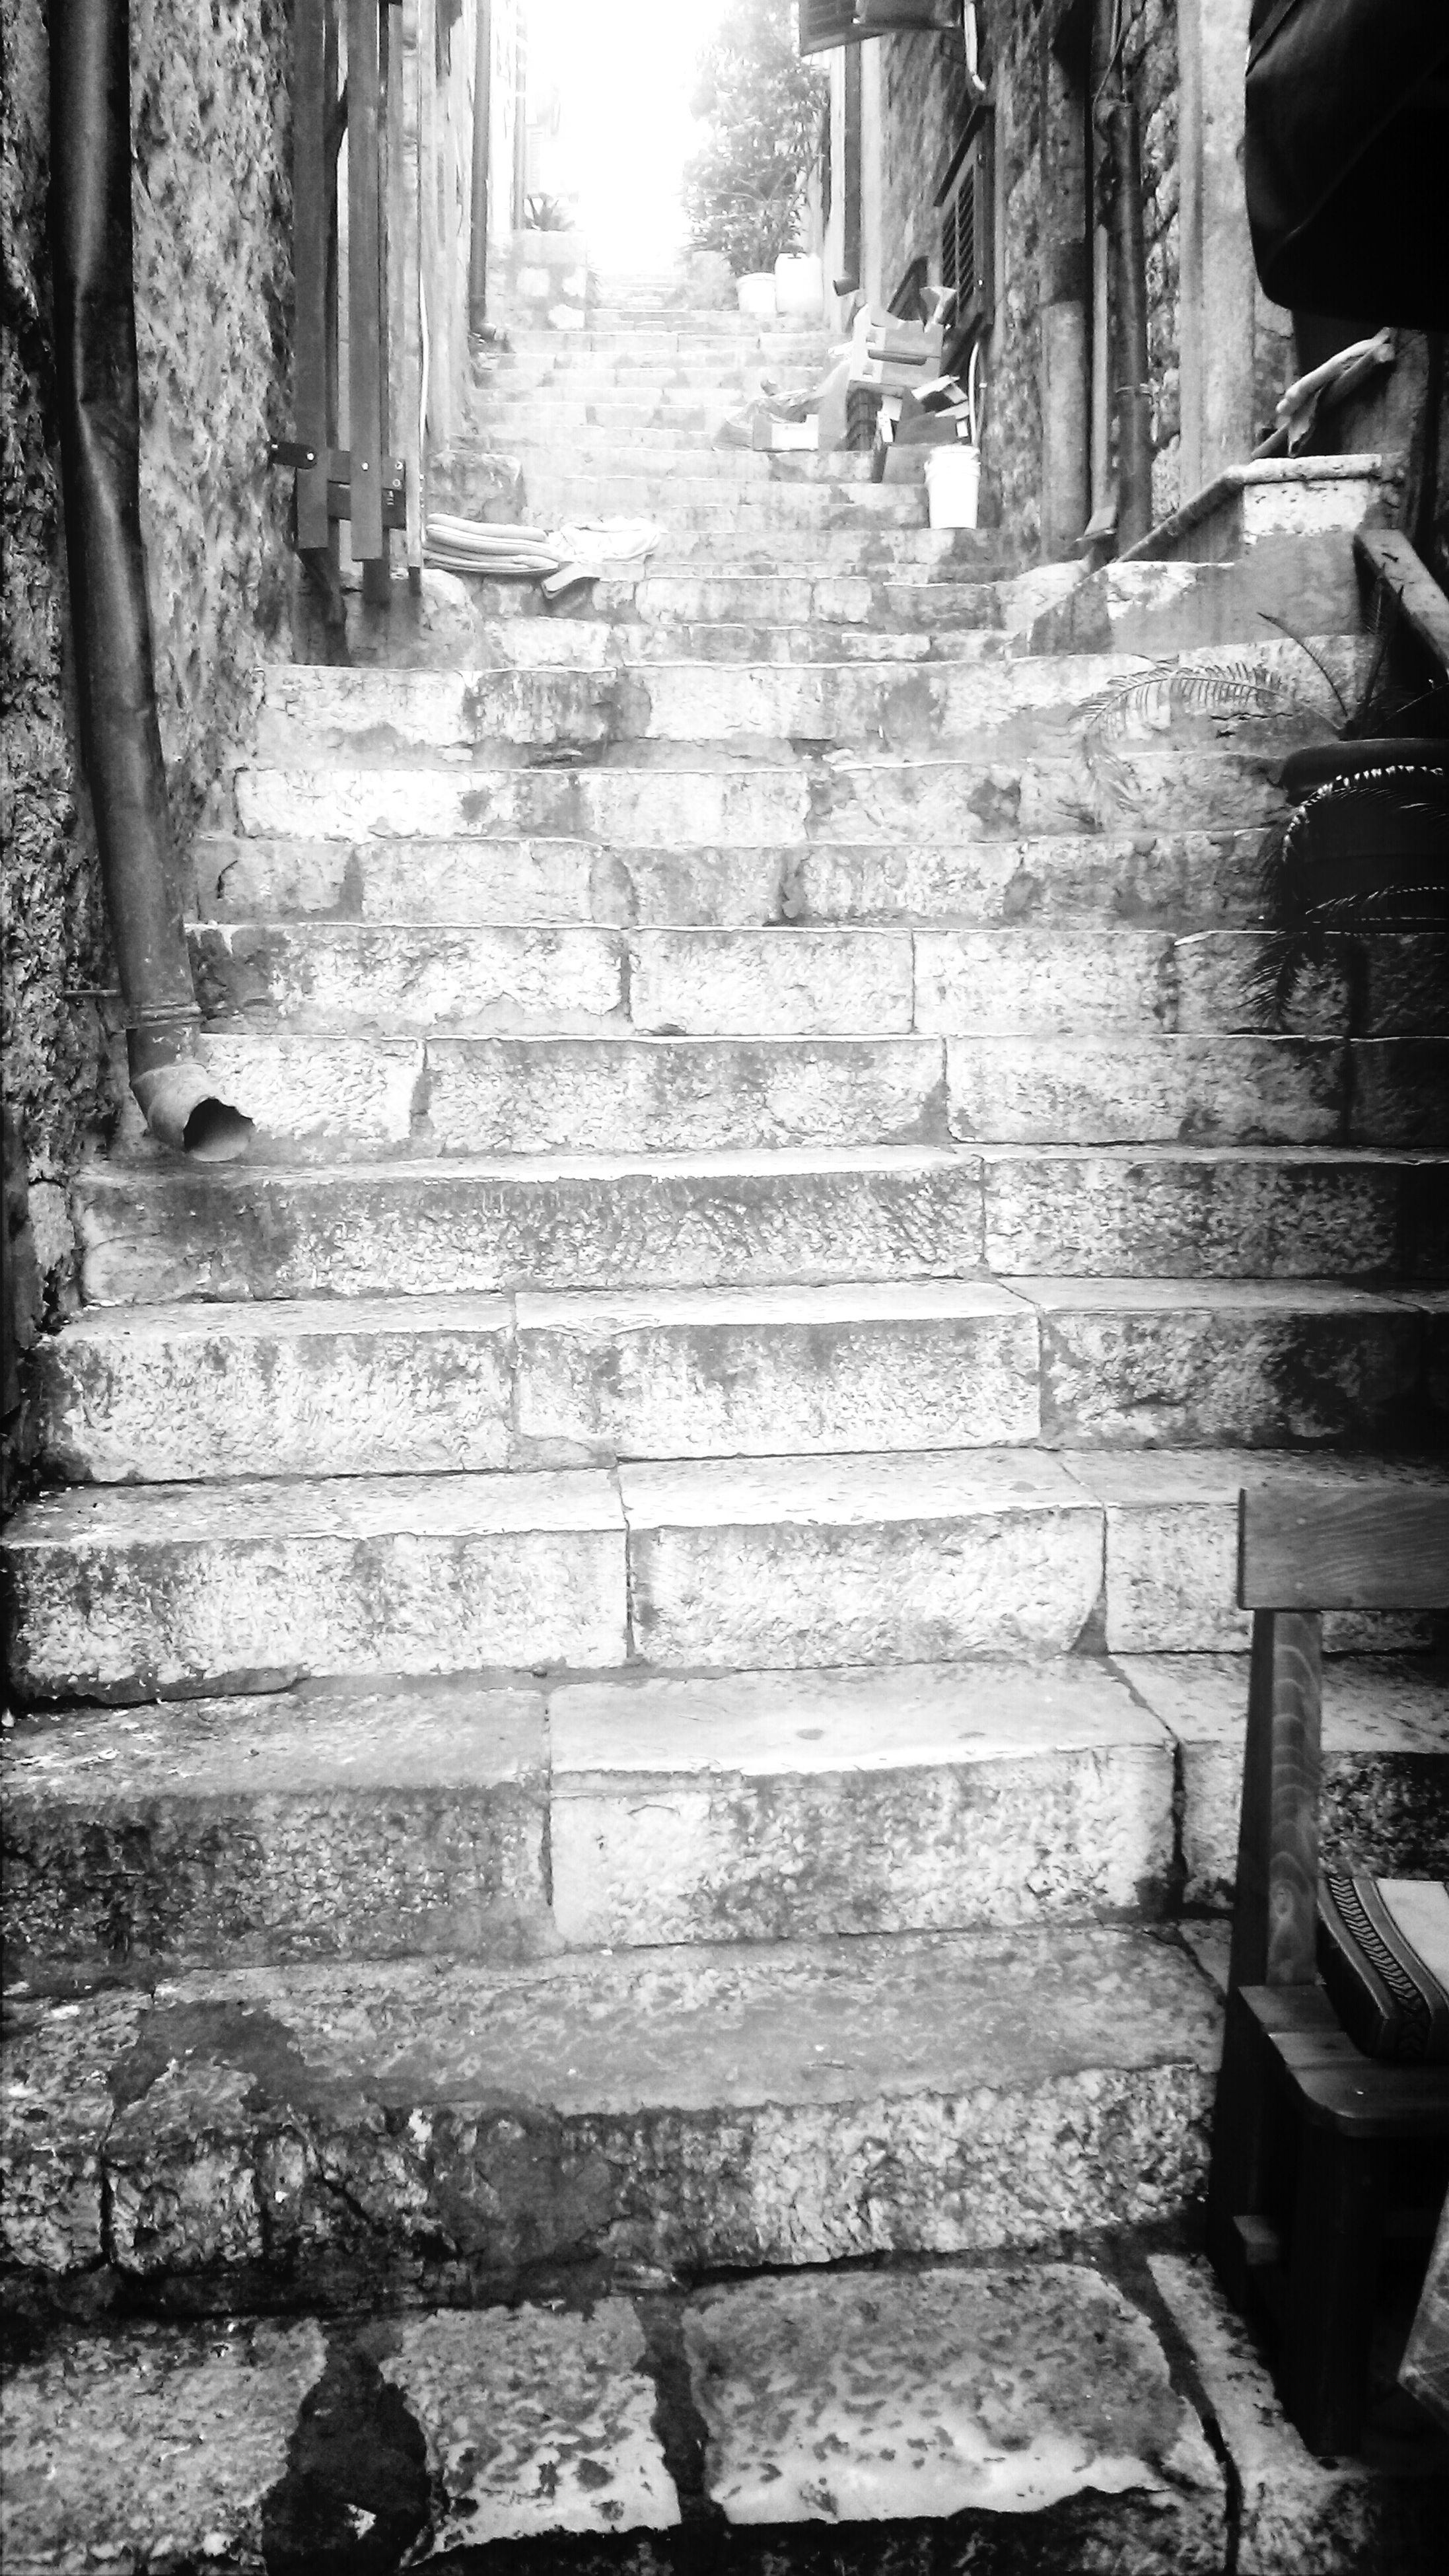 built structure, steps, architecture, building exterior, the way forward, old, stone material, cobblestone, day, outdoors, steps and staircases, footpath, house, abandoned, sunlight, bench, wood - material, paving stone, wall - building feature, stone wall